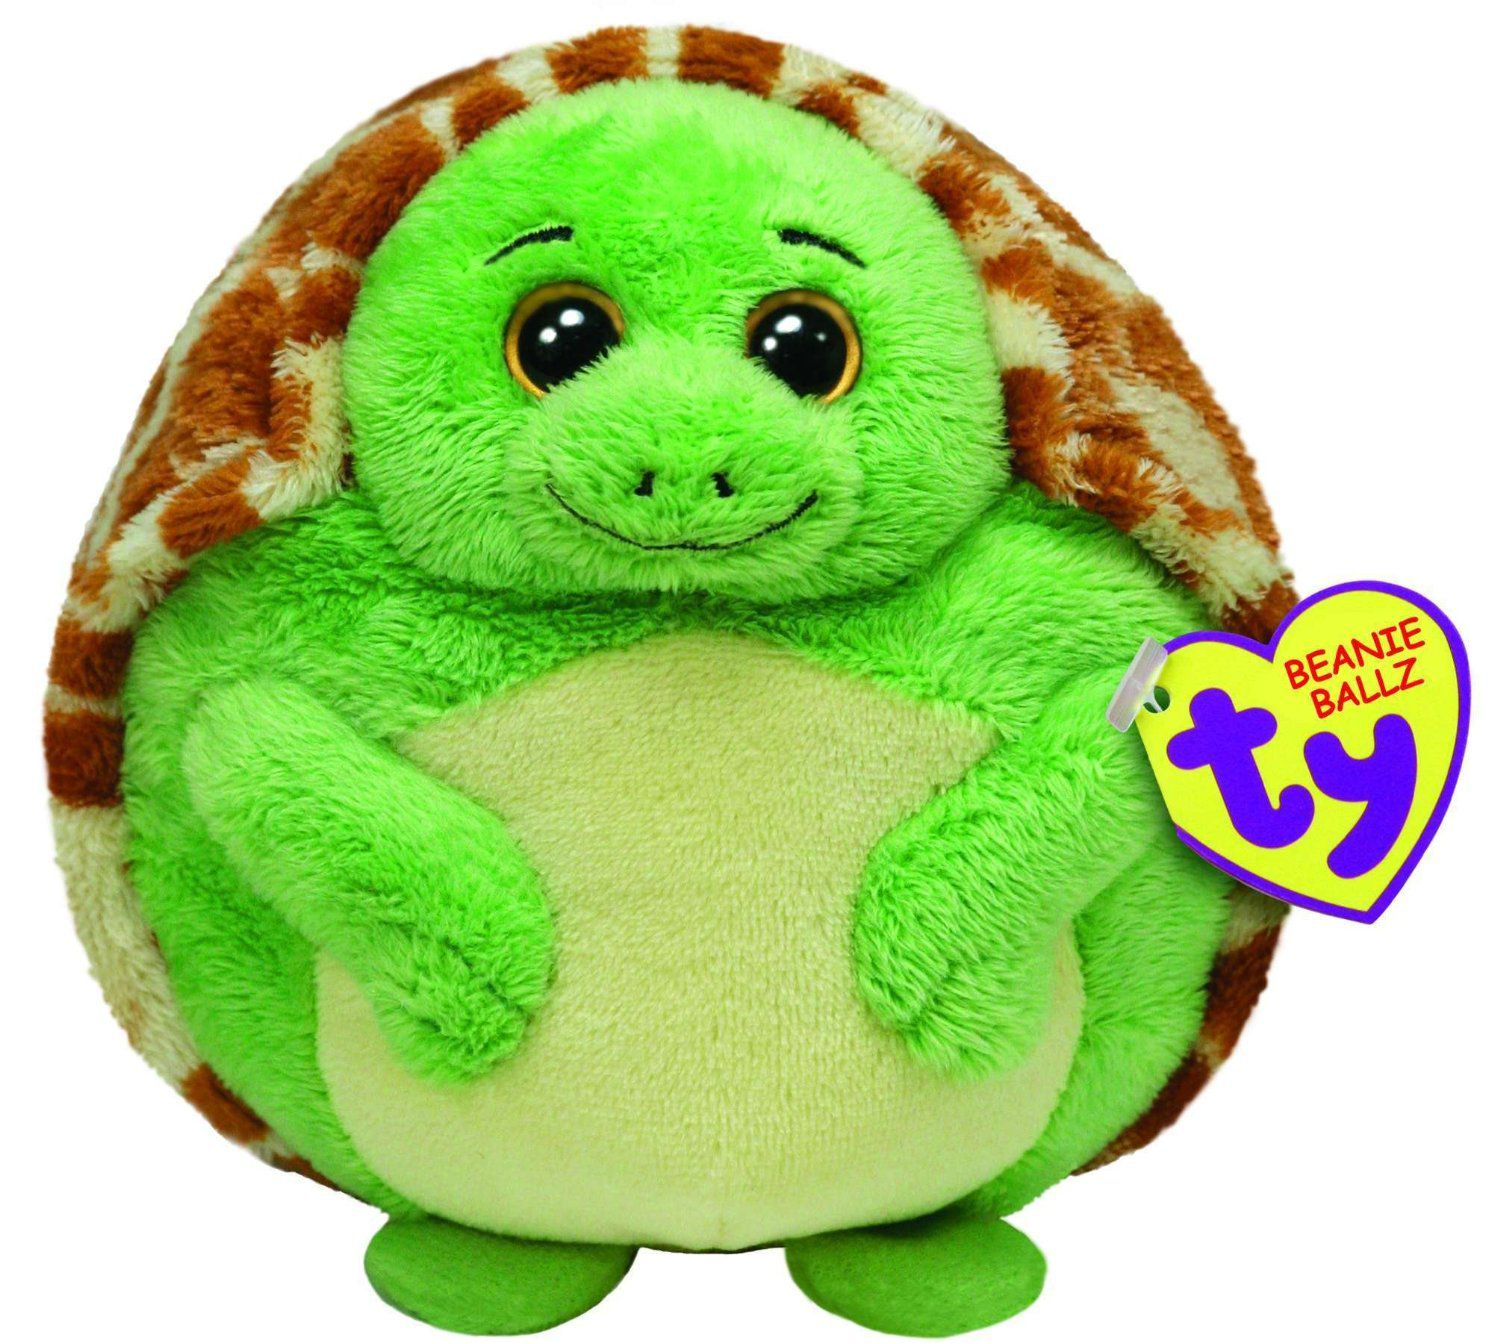 TY Zoom Turtle 13 Large Beanie Ballz 38904